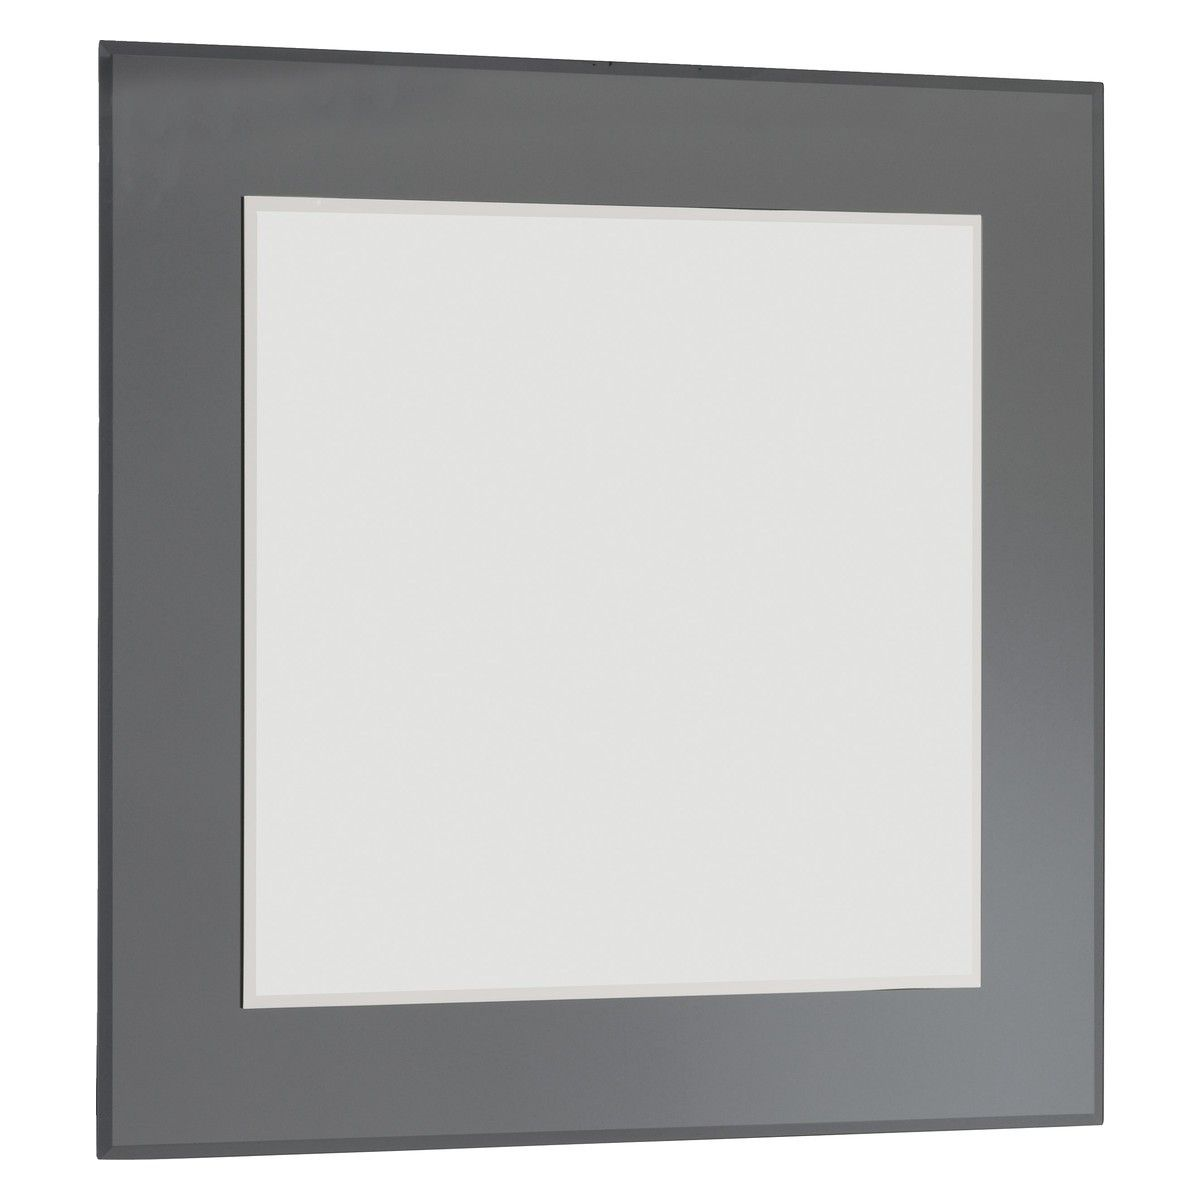 Lay 90 X 90cm Grey Square Wall Mirror Lighted